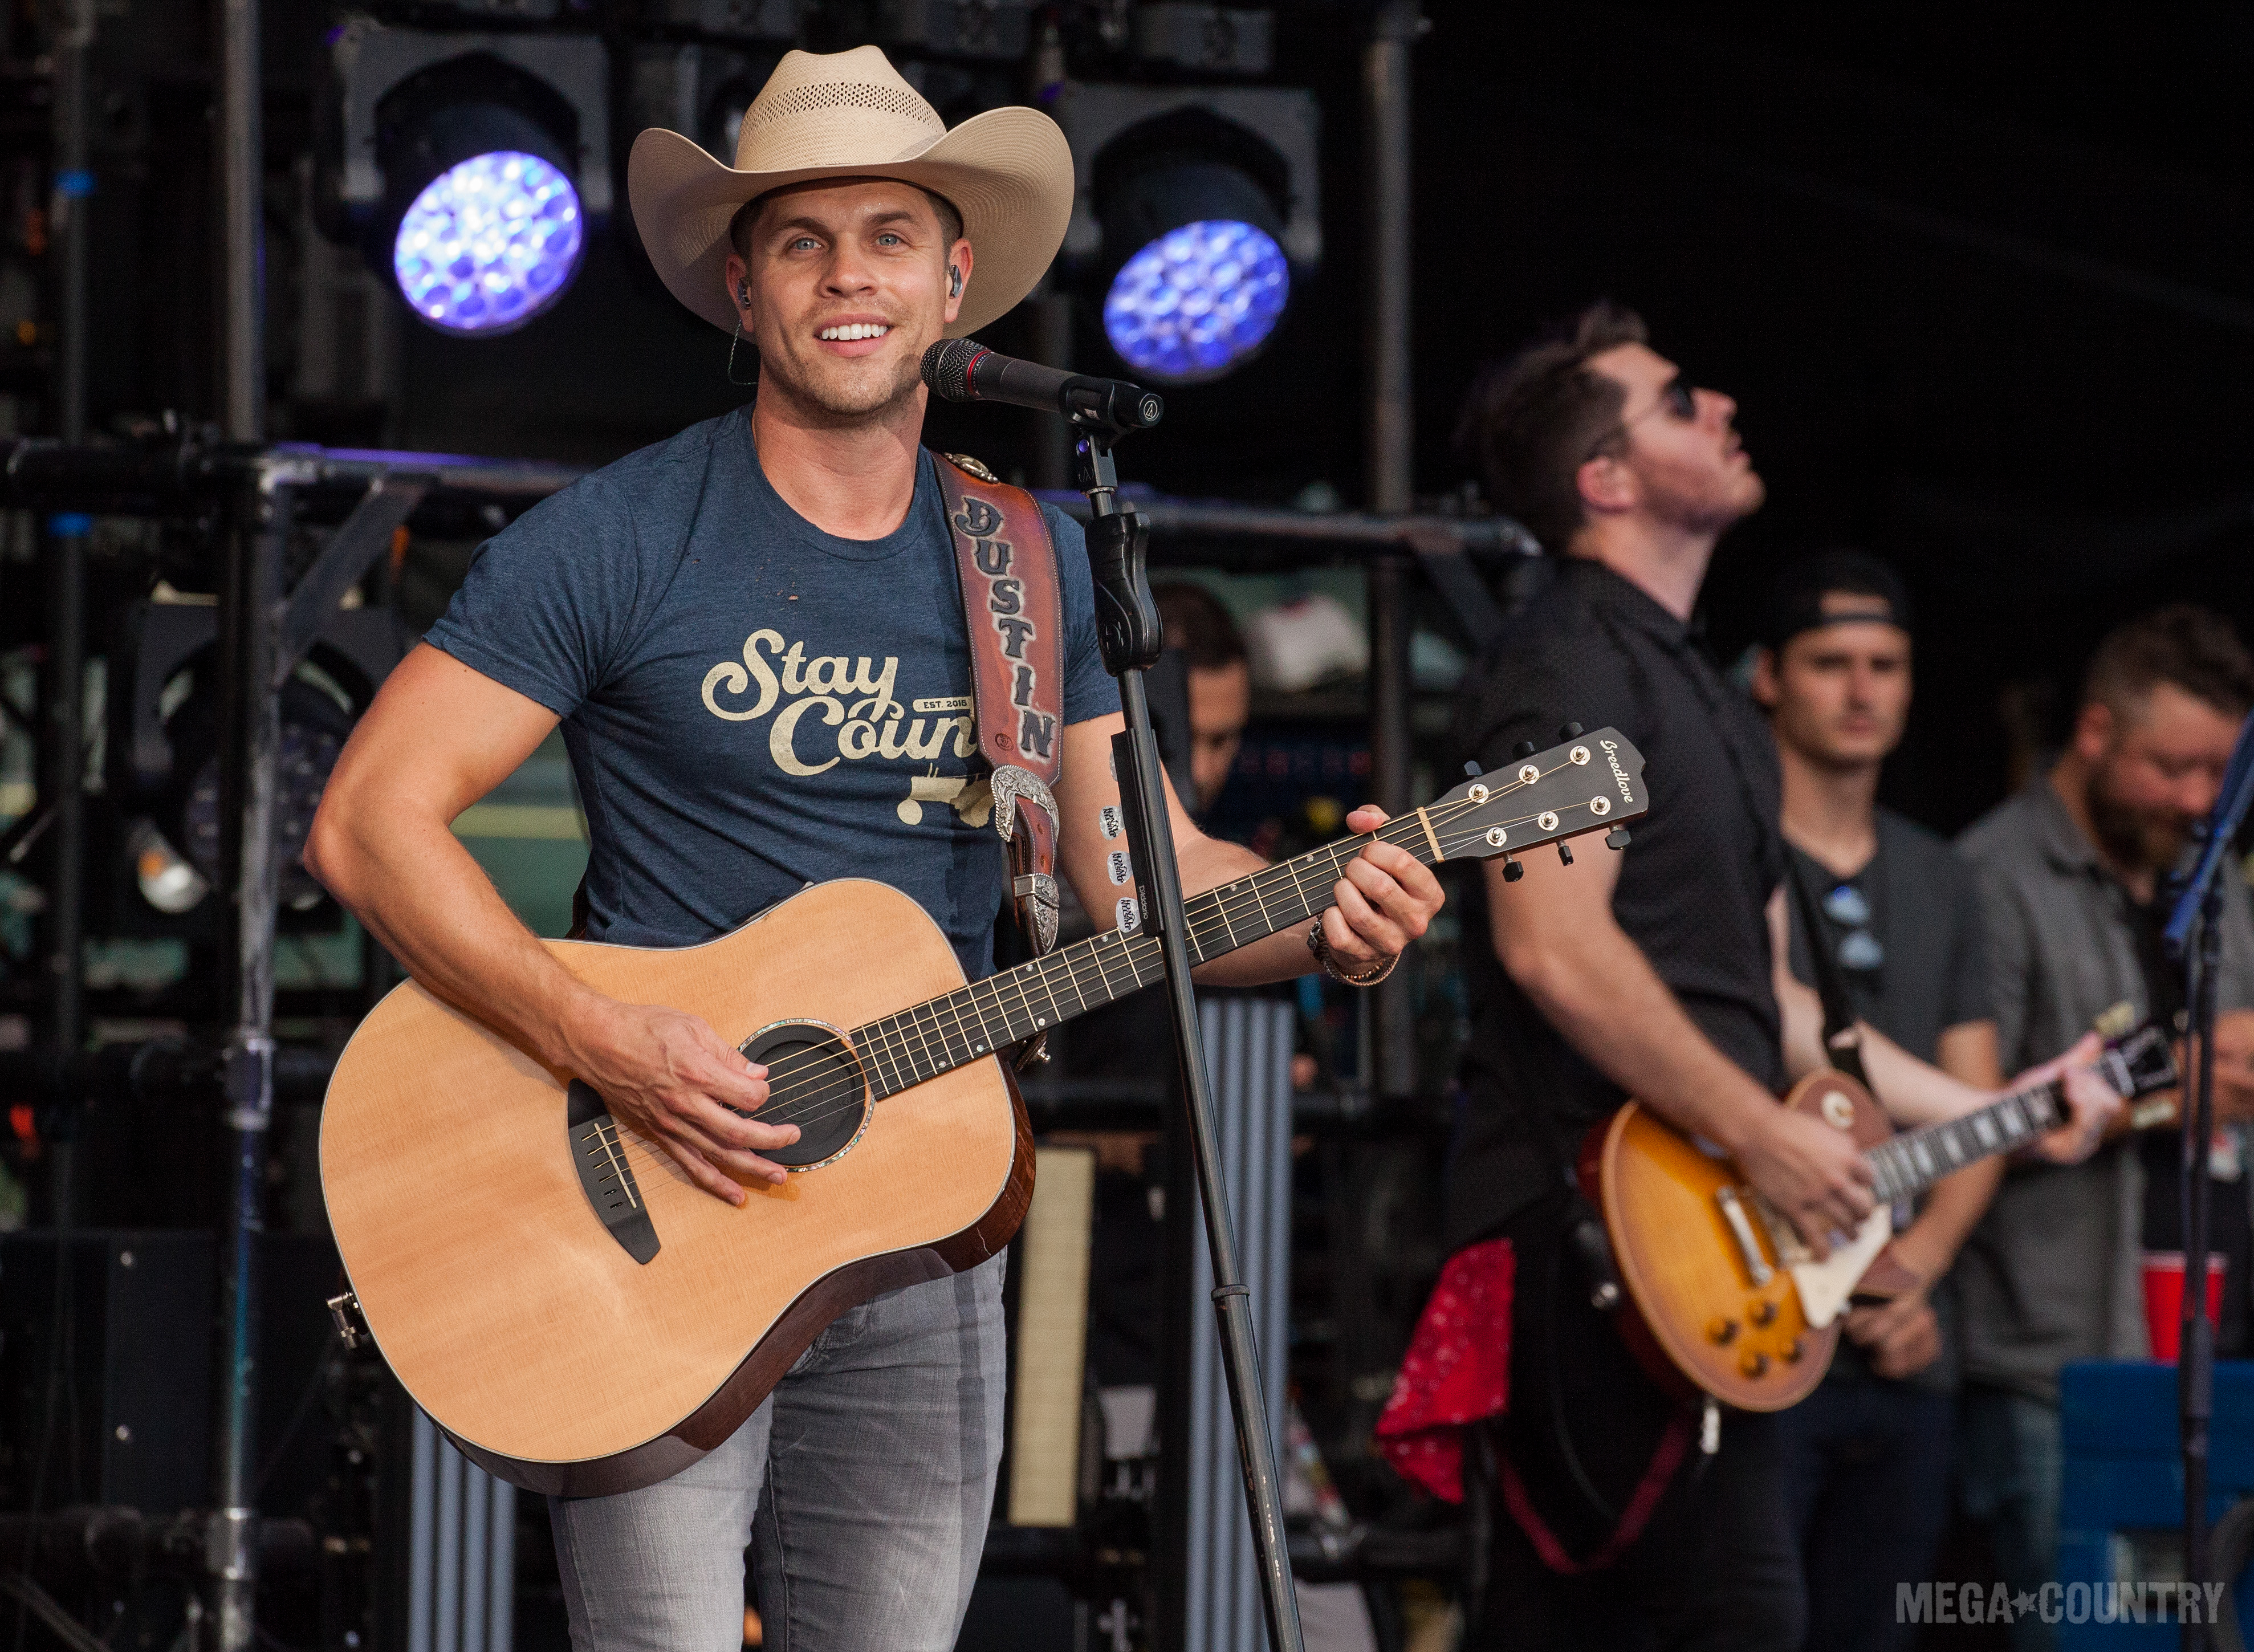 Hot Shots Dustin Lynch News Megacountry